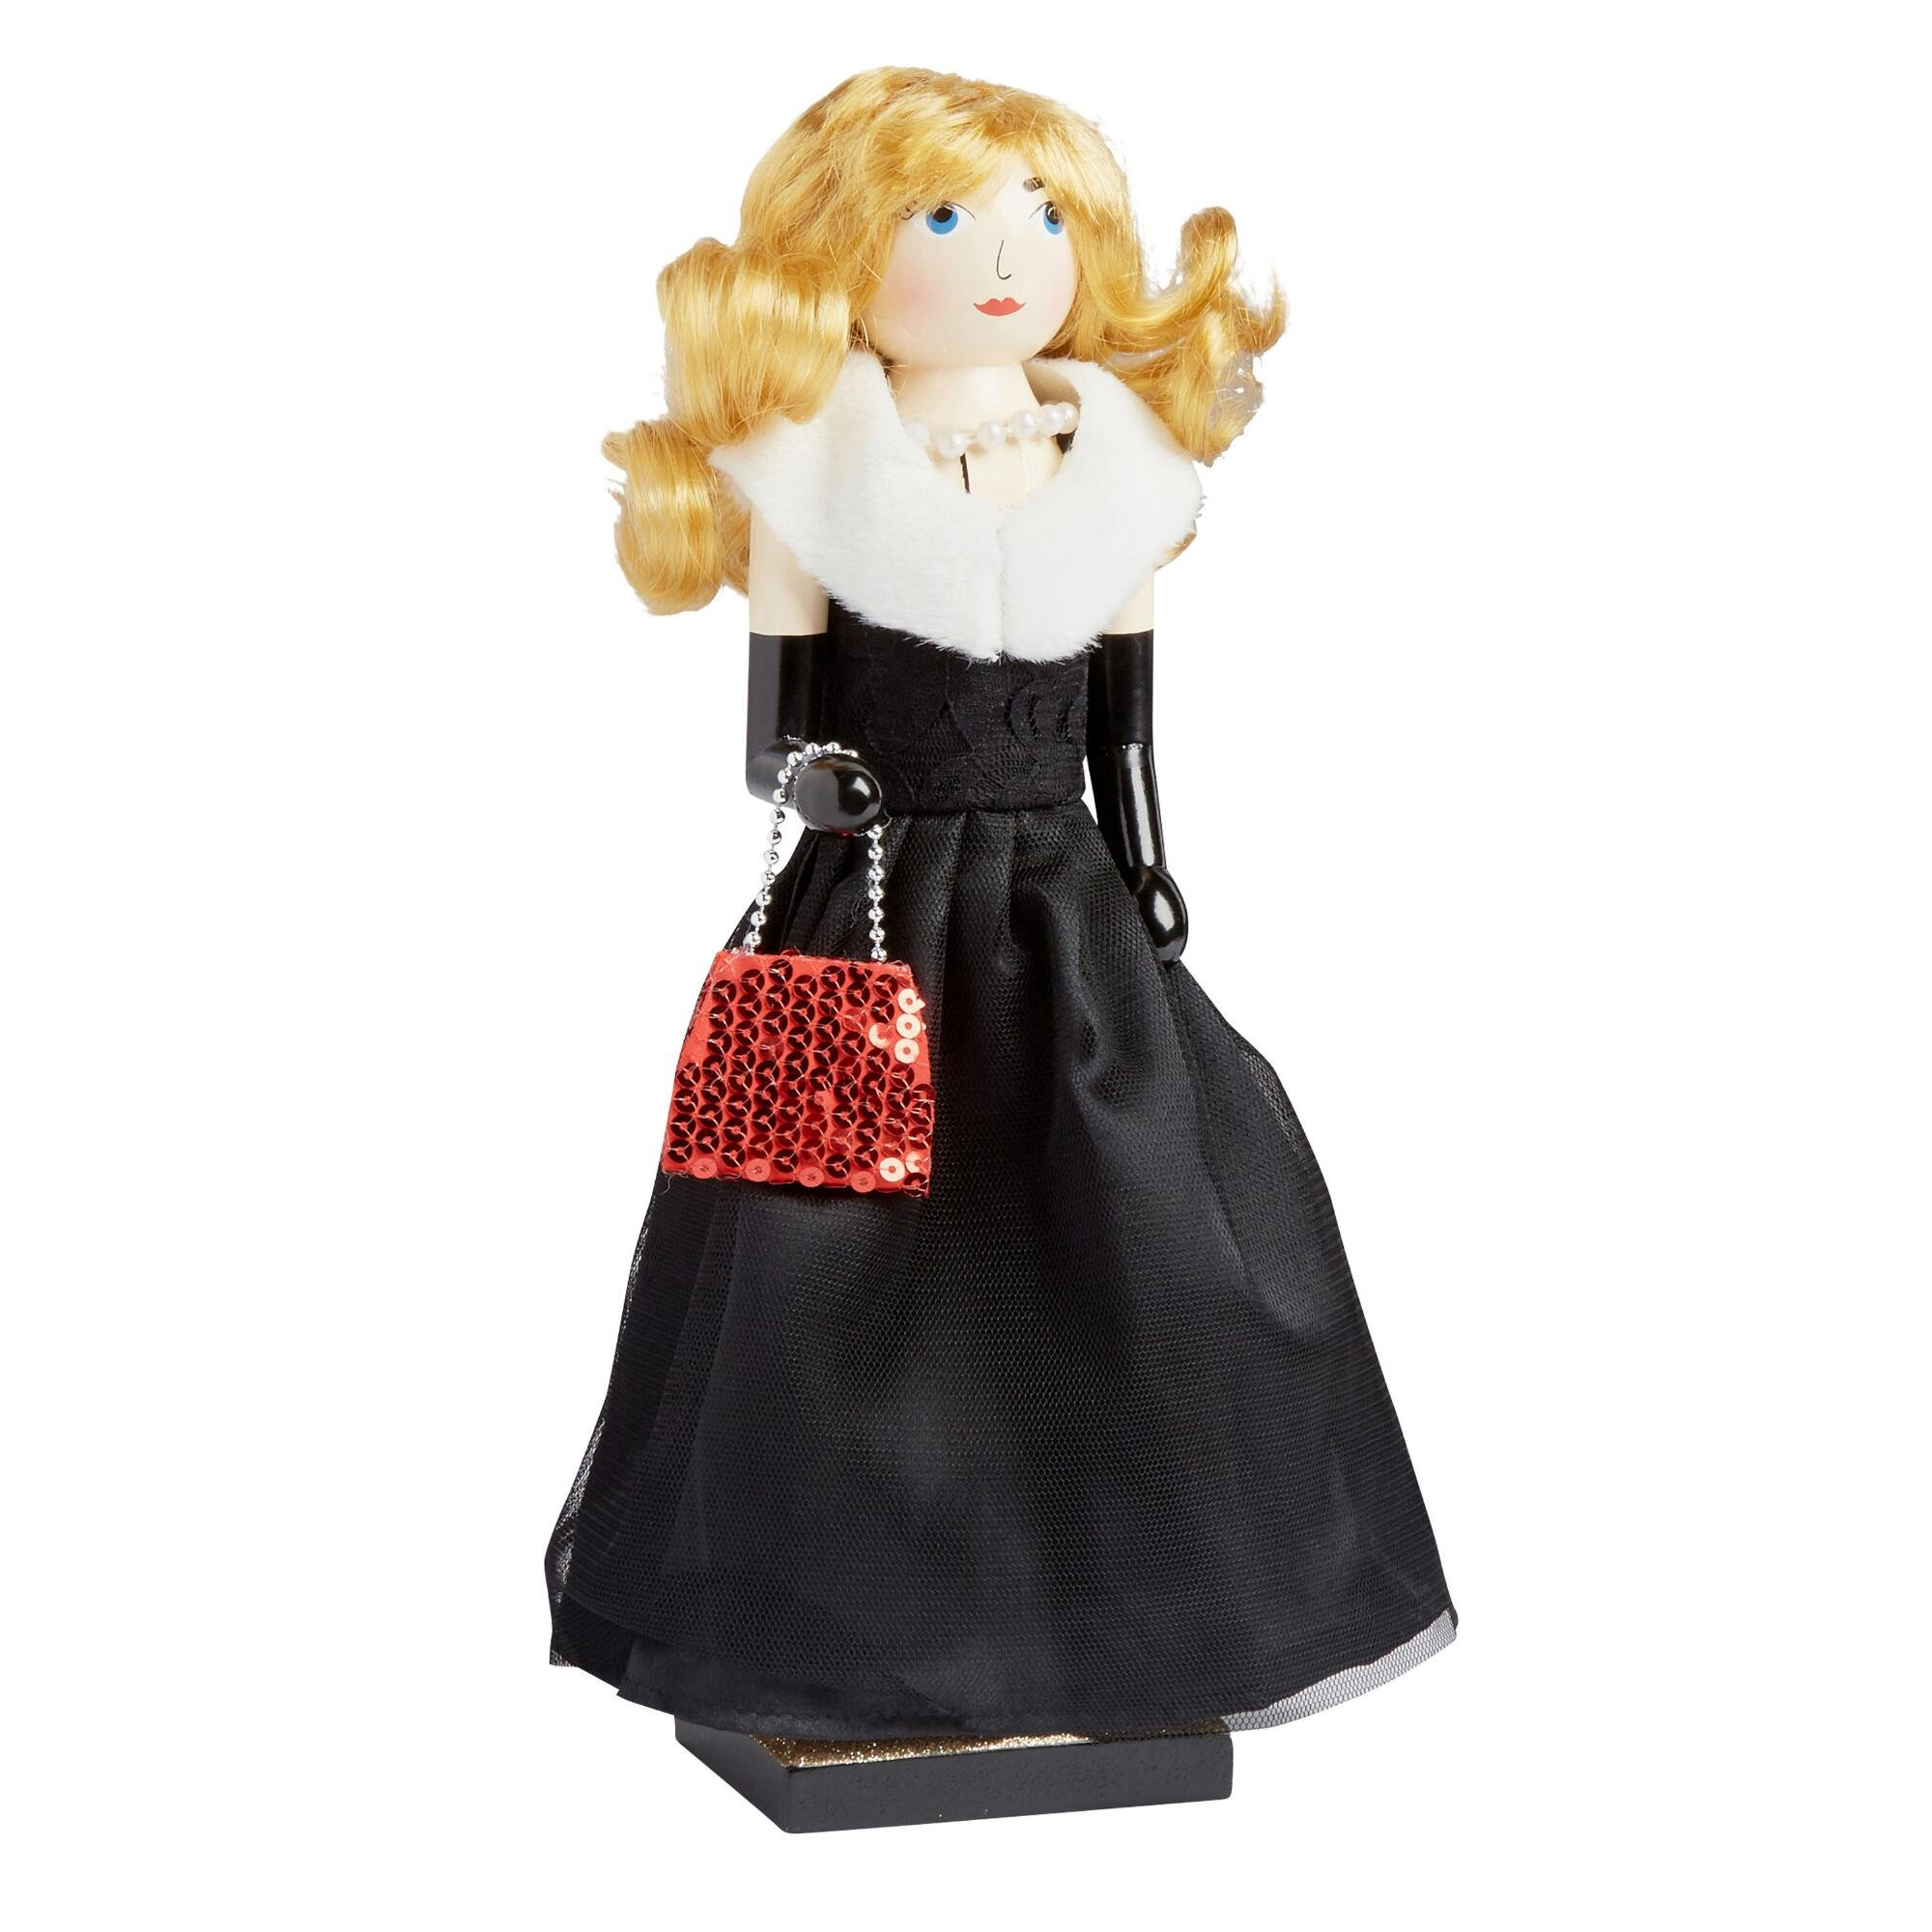 Northeast Home Goods Wooden Christmas Nutcracker Decor, 15-inch Black Gown Glam Girl